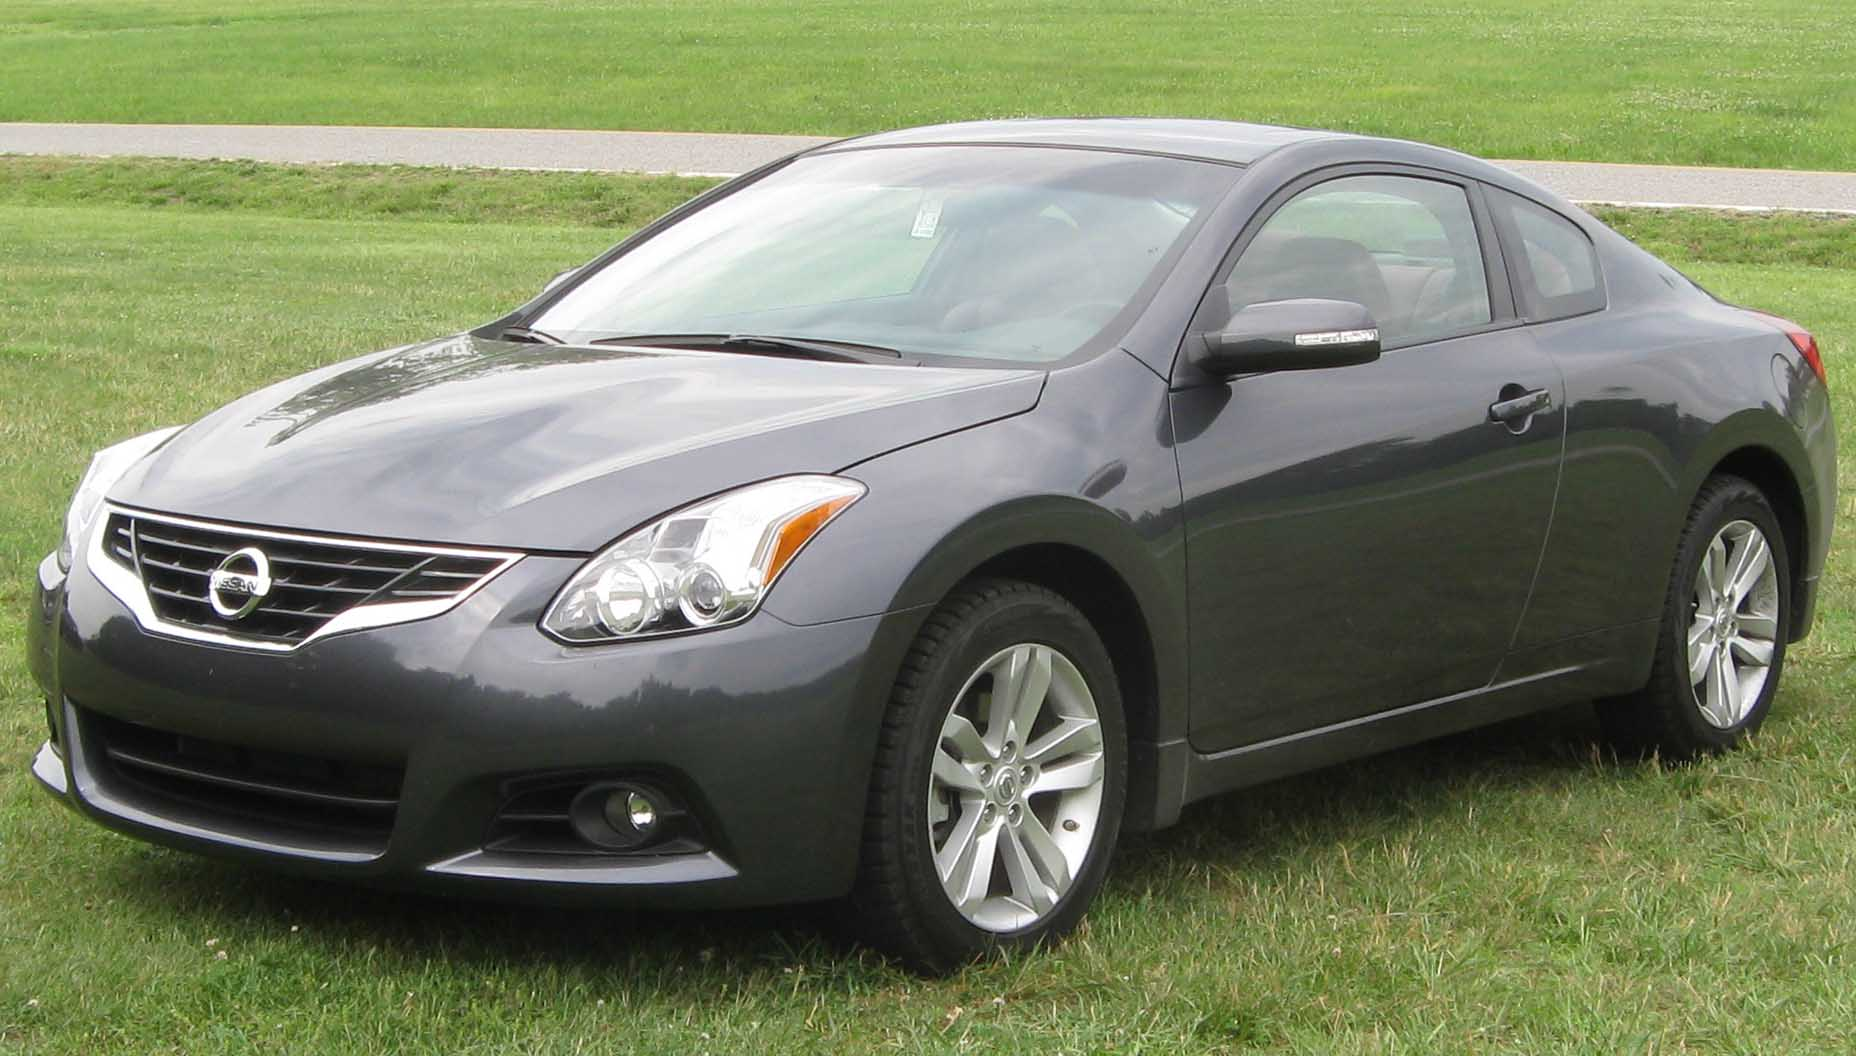 file 2010 nissan altima 2 5sl coupe 1 06 05 wikimedia commons. Black Bedroom Furniture Sets. Home Design Ideas